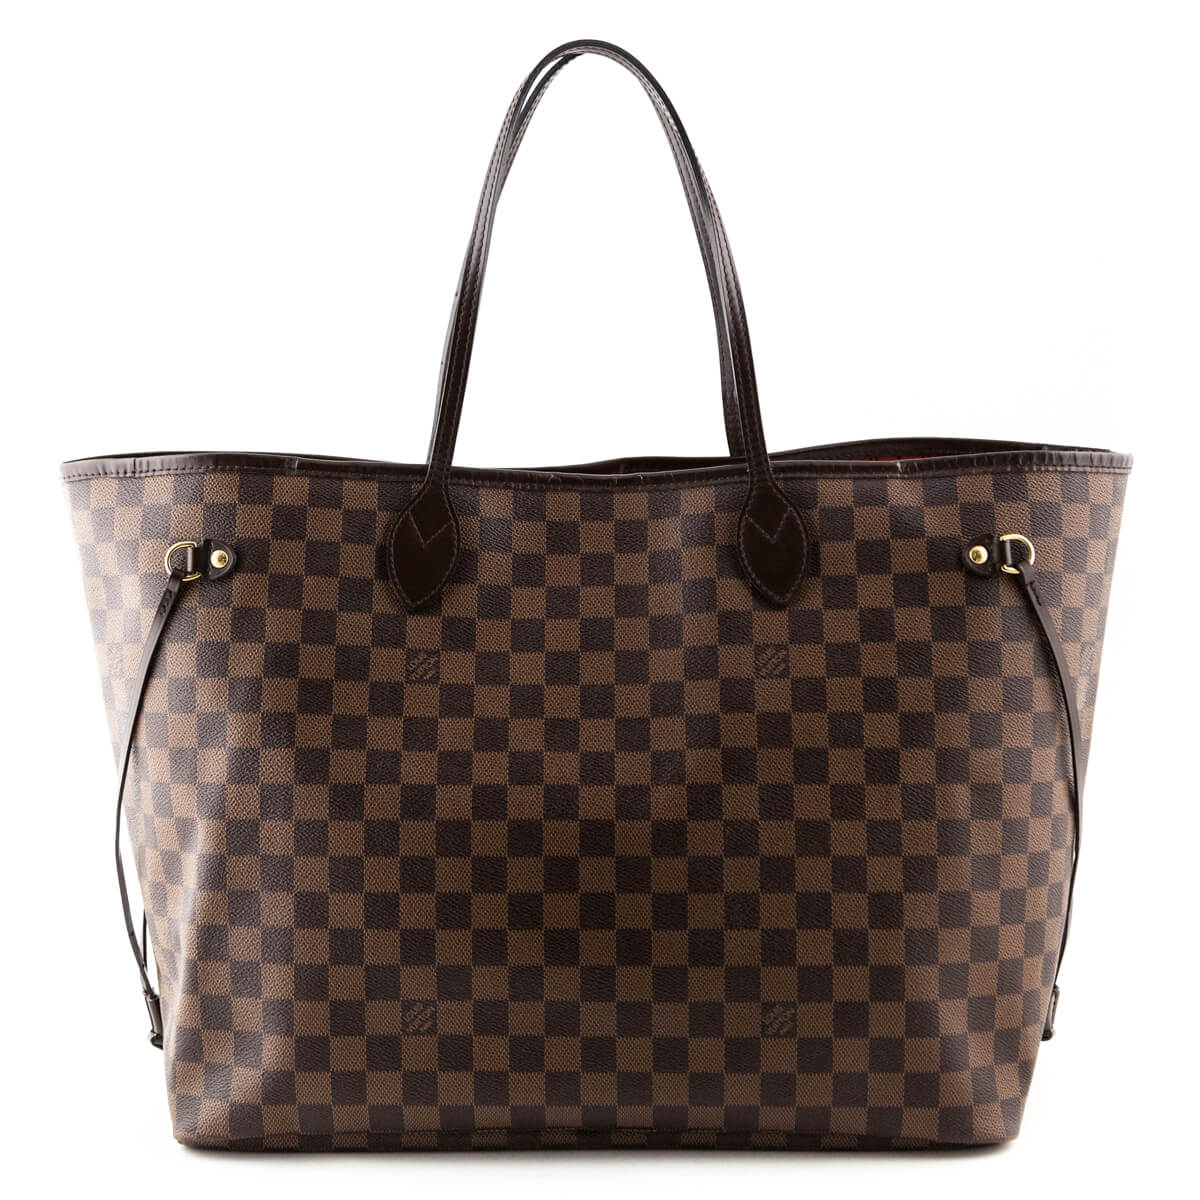 e397e9ac7129 ... Louis Vuitton Damier Ebene Neverfull GM - LOVE that BAG - Preowned  Authentic Designer Handbags ...